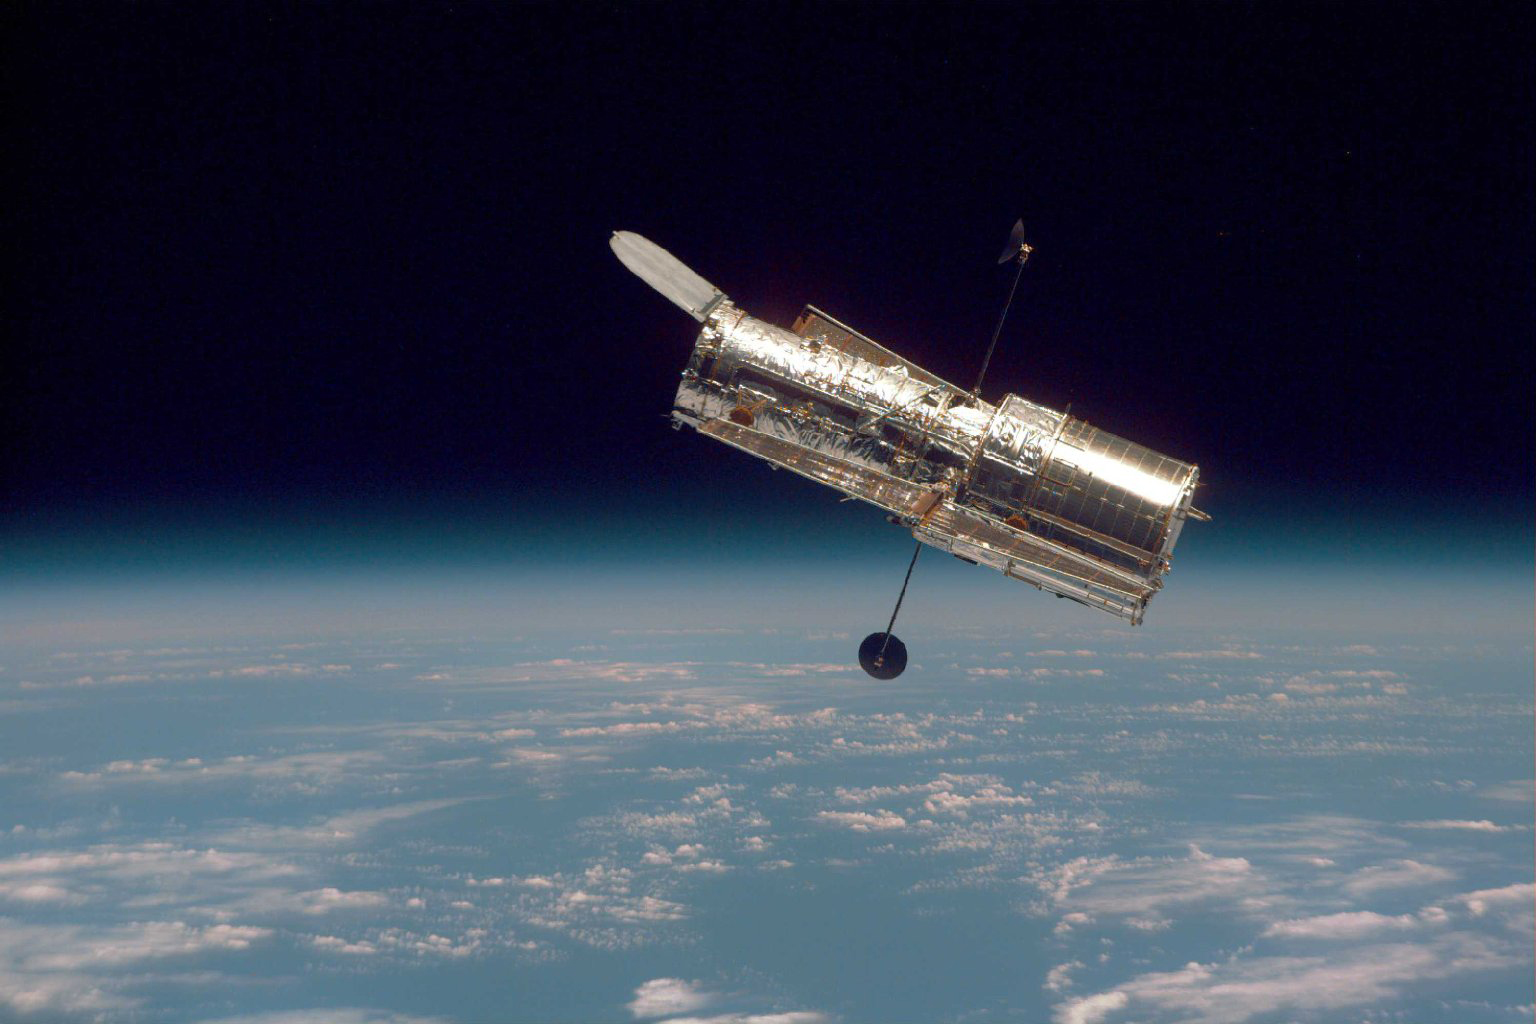 Hubble Telescope Images of Space Hubble Space Telescope